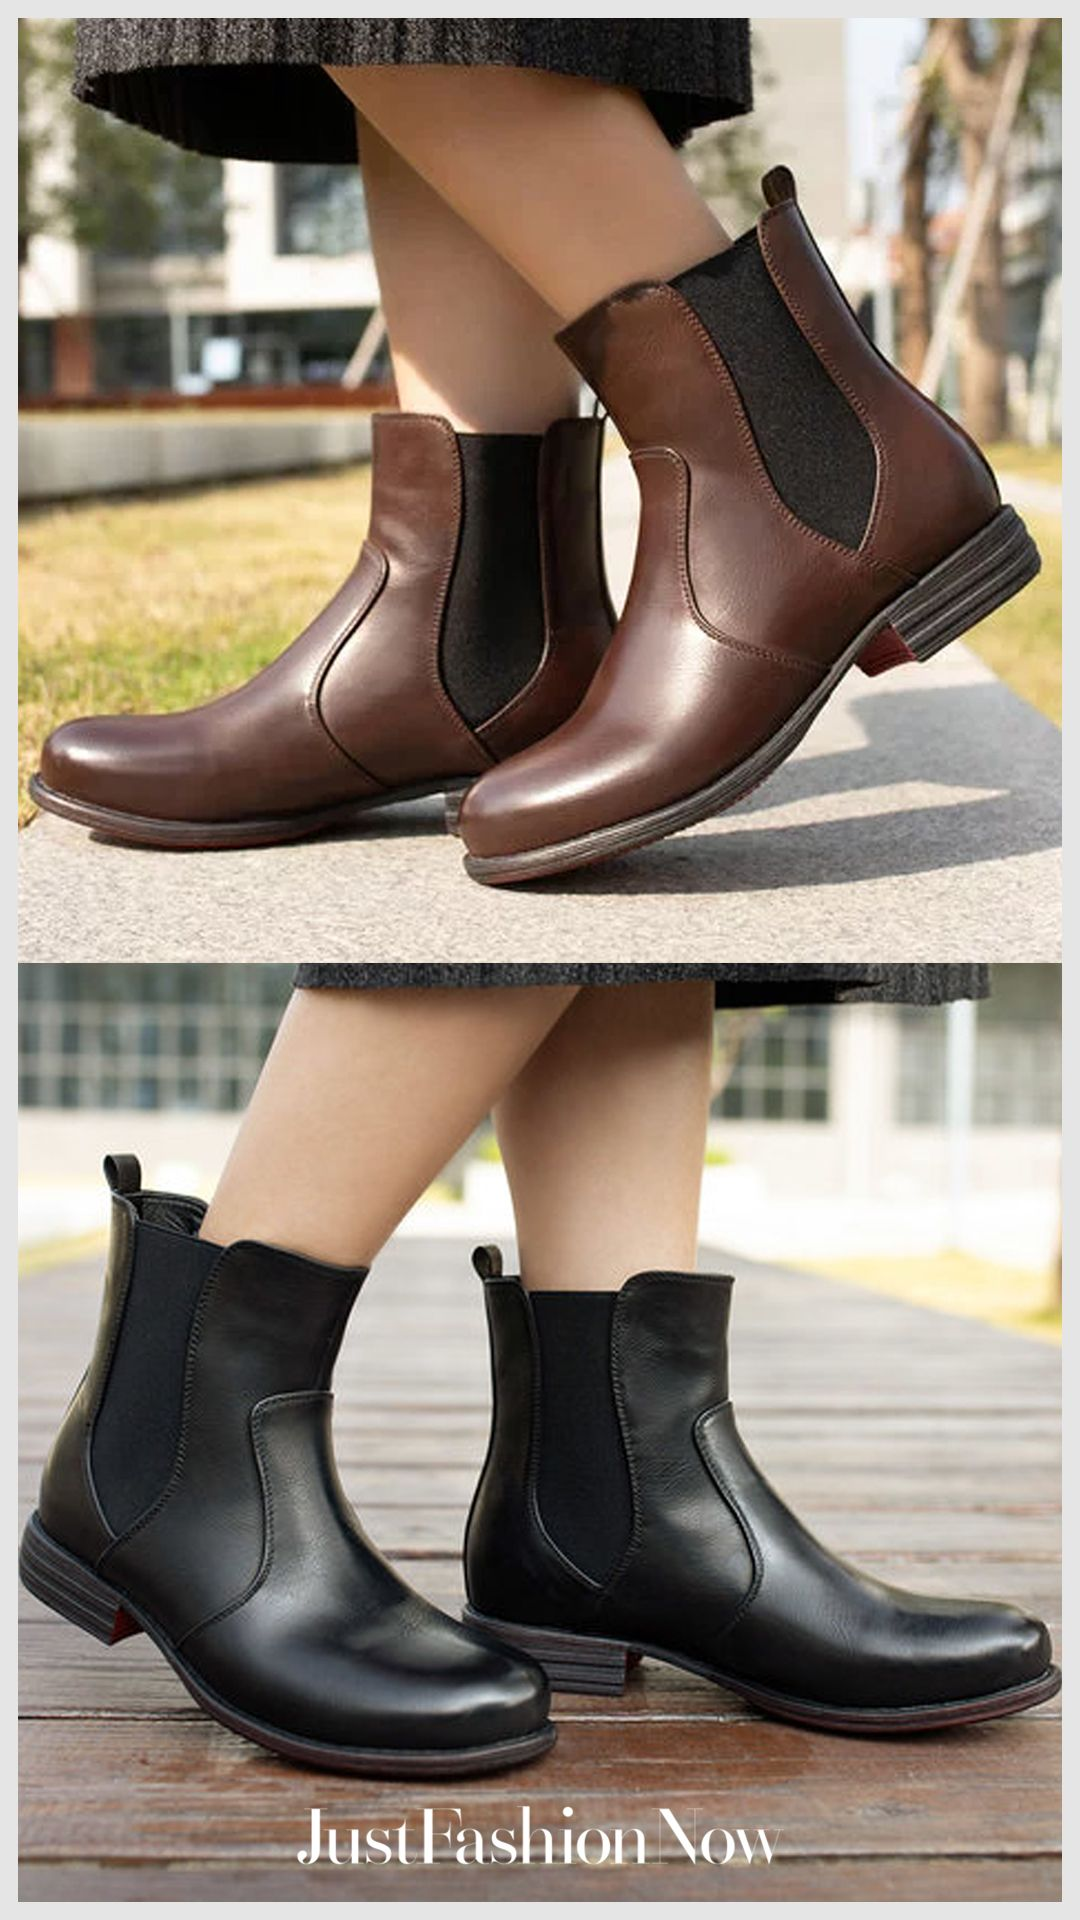 f8a1452ee45 Women s Vintage Low Heel Plus Size Ankle Booties Slip-on Short Chelsea Boots   women shoes  boots casual shoes  fall fashion   fall back to school shoes  ...